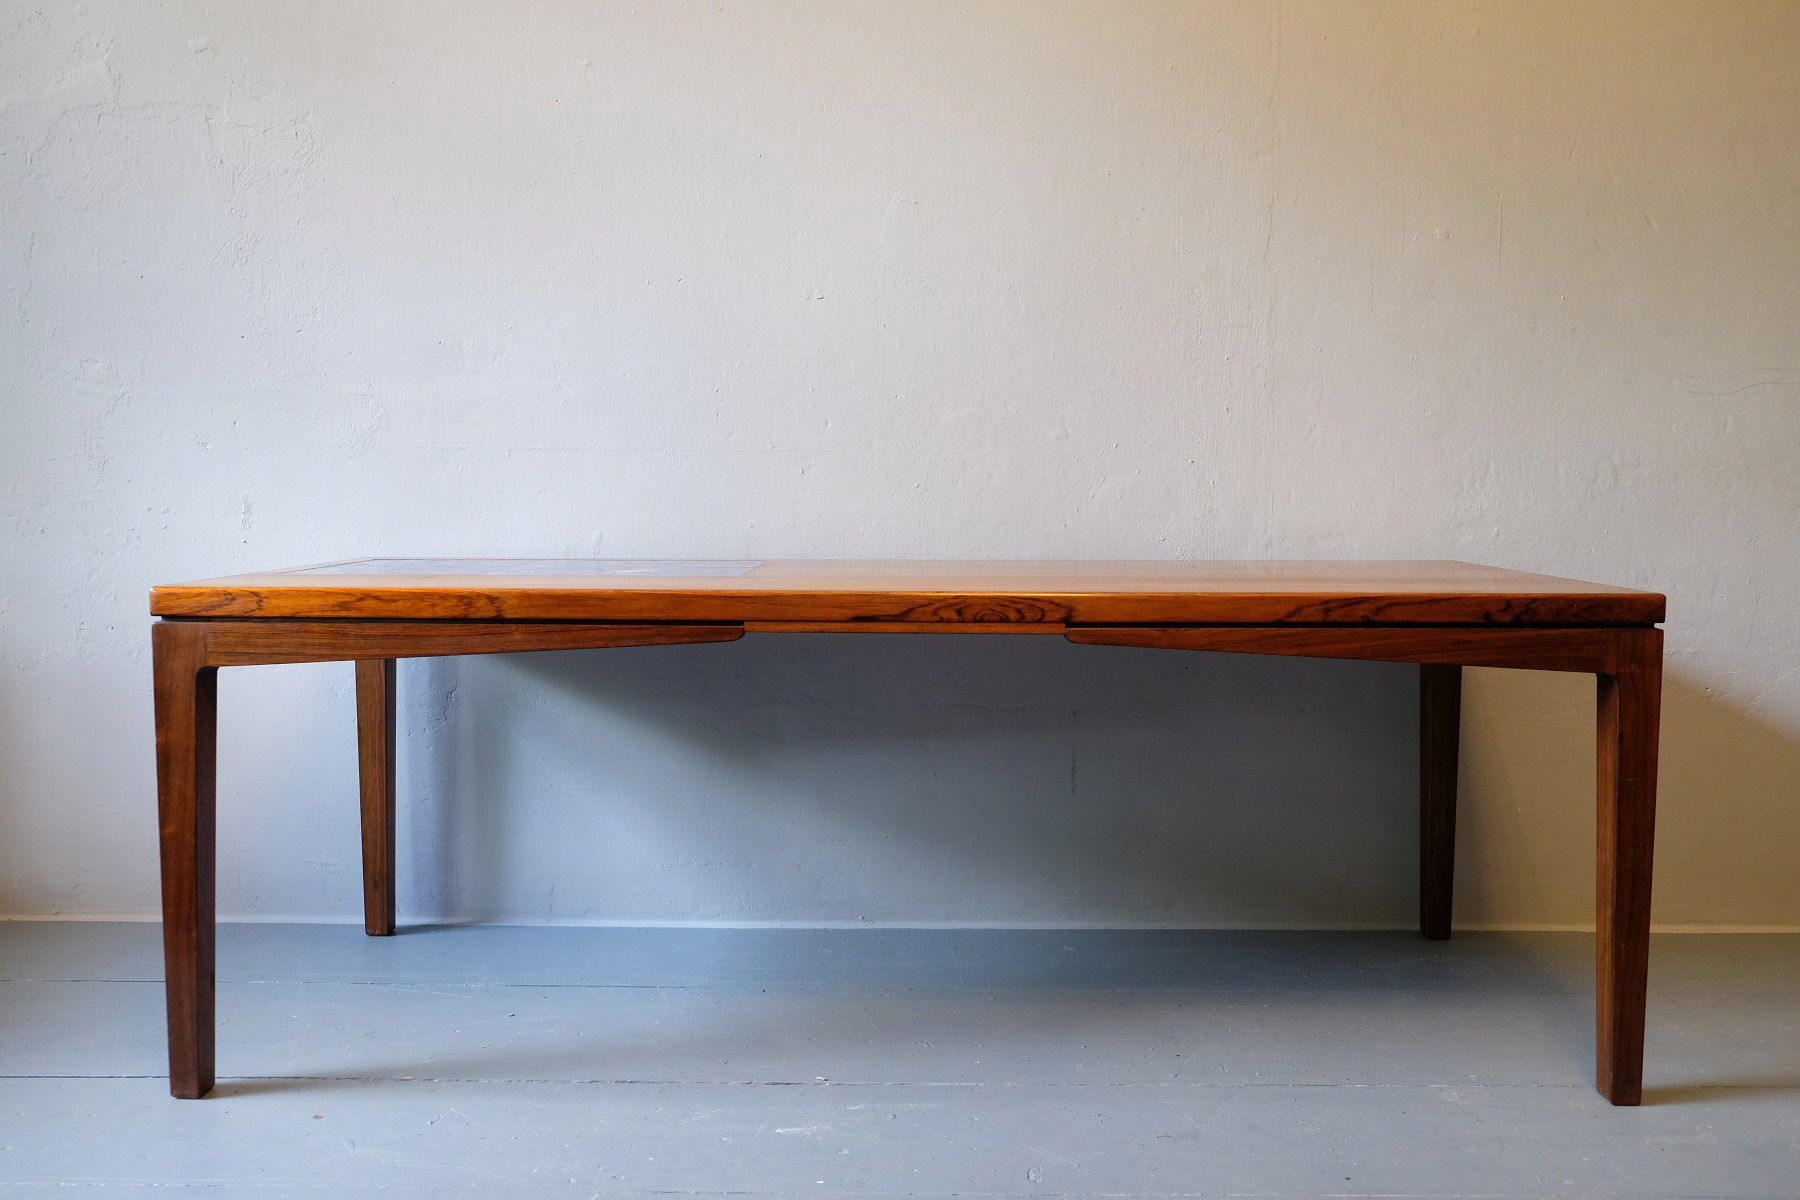 ... Danish Rosewood Coffee Table With Mosaic Ceramic Tiles 1960s For At  Pamono ...